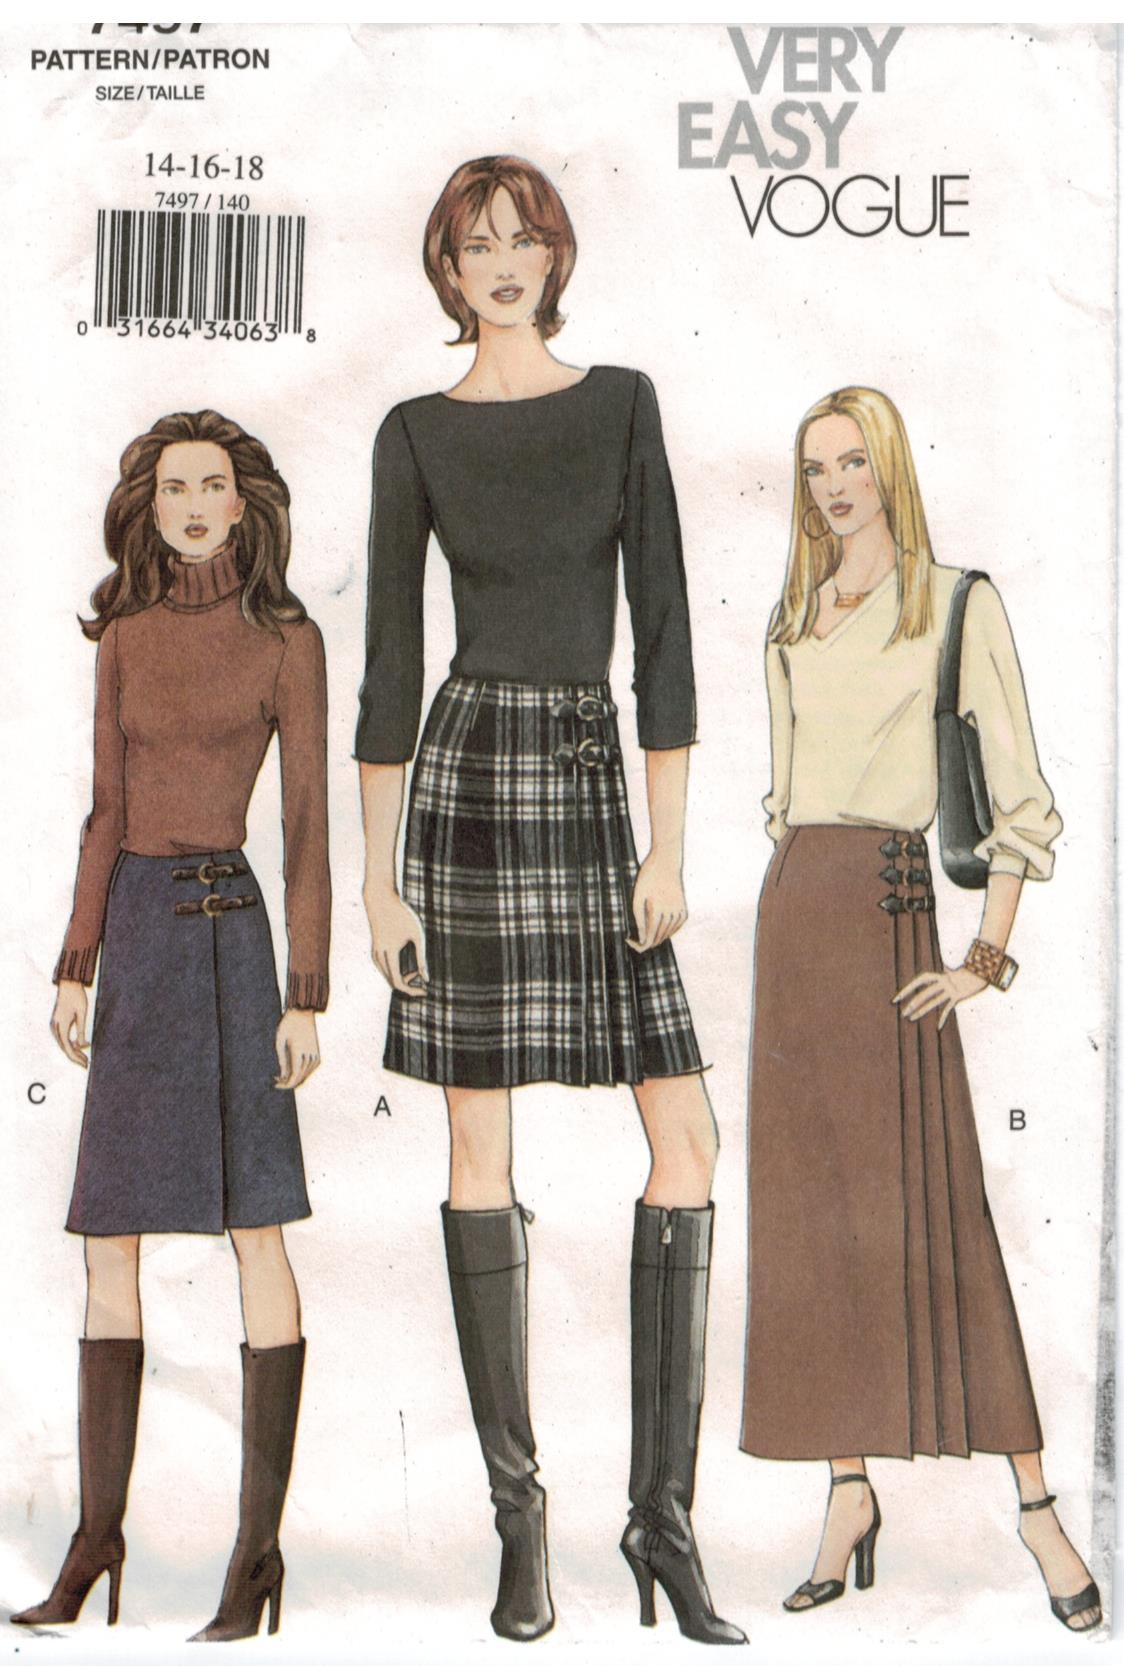 Kilt Sewing Pattern Interesting Design